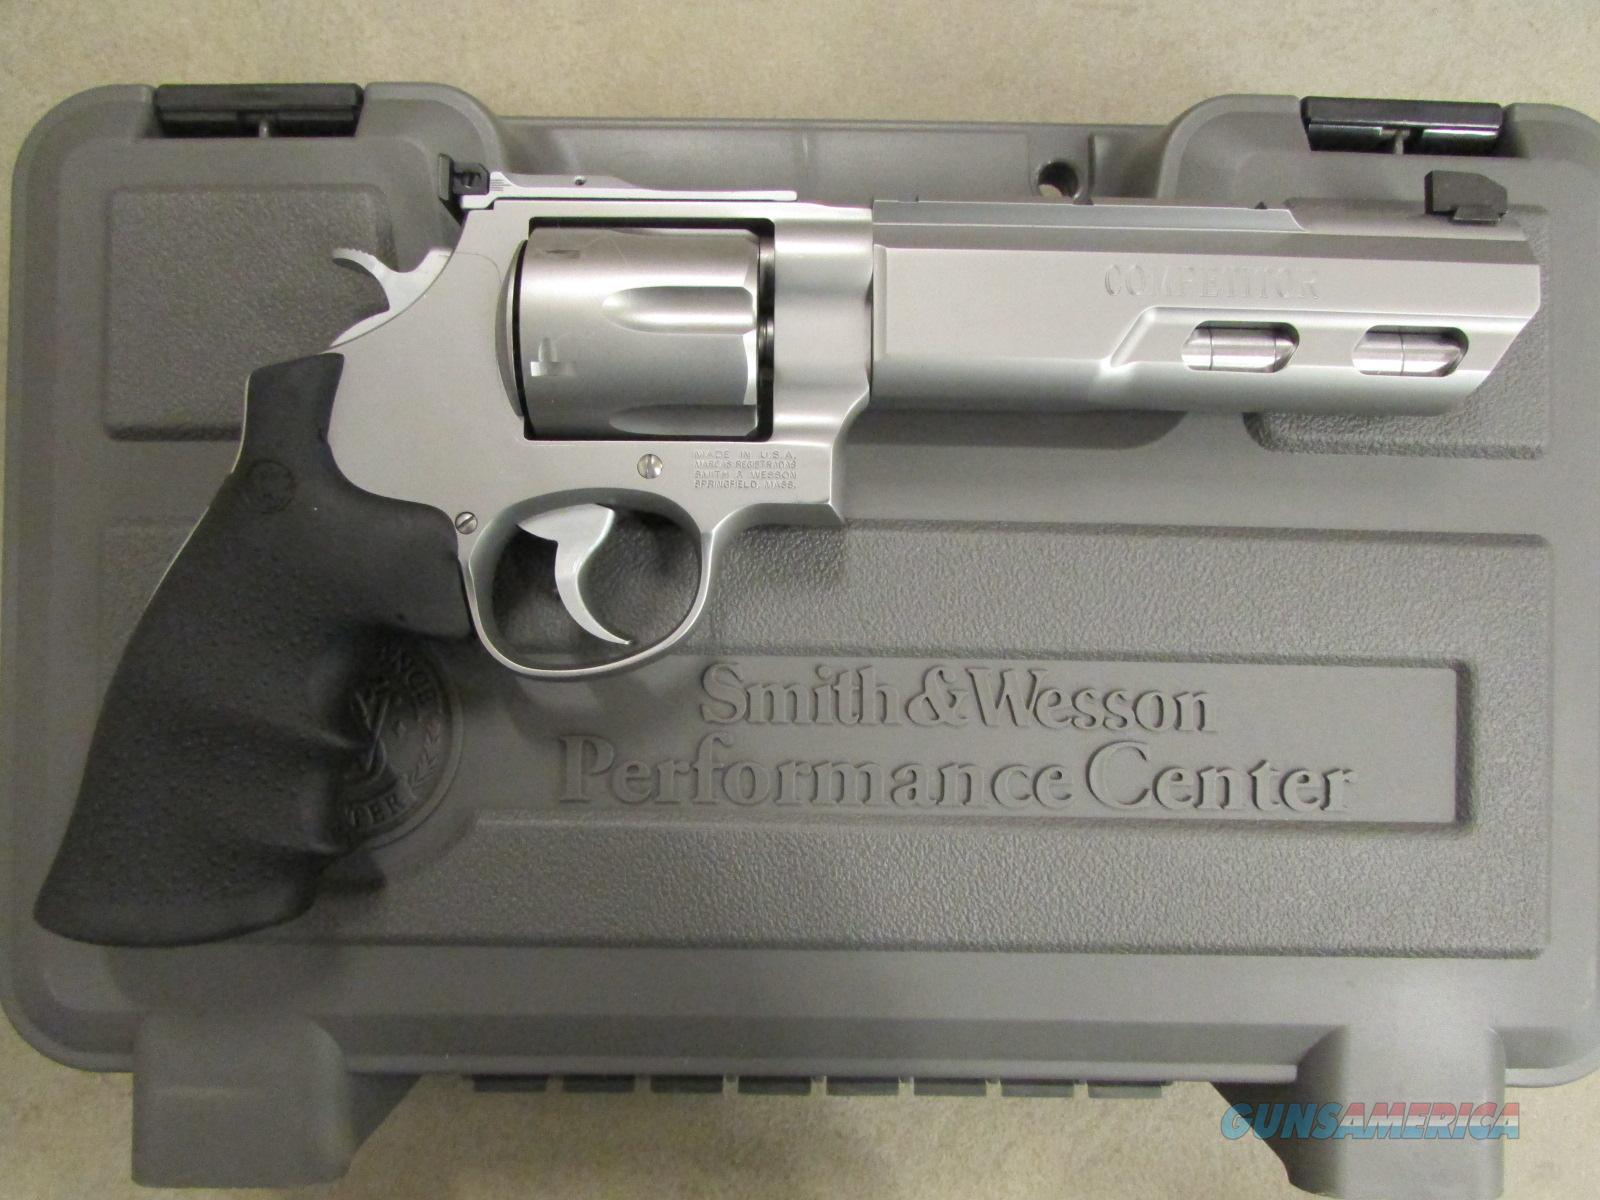 "Smith & Wesson Model 629 Competitor 6"" Weighted Barrel  Guns > Pistols > Smith & Wesson Revolvers > Performance Center"